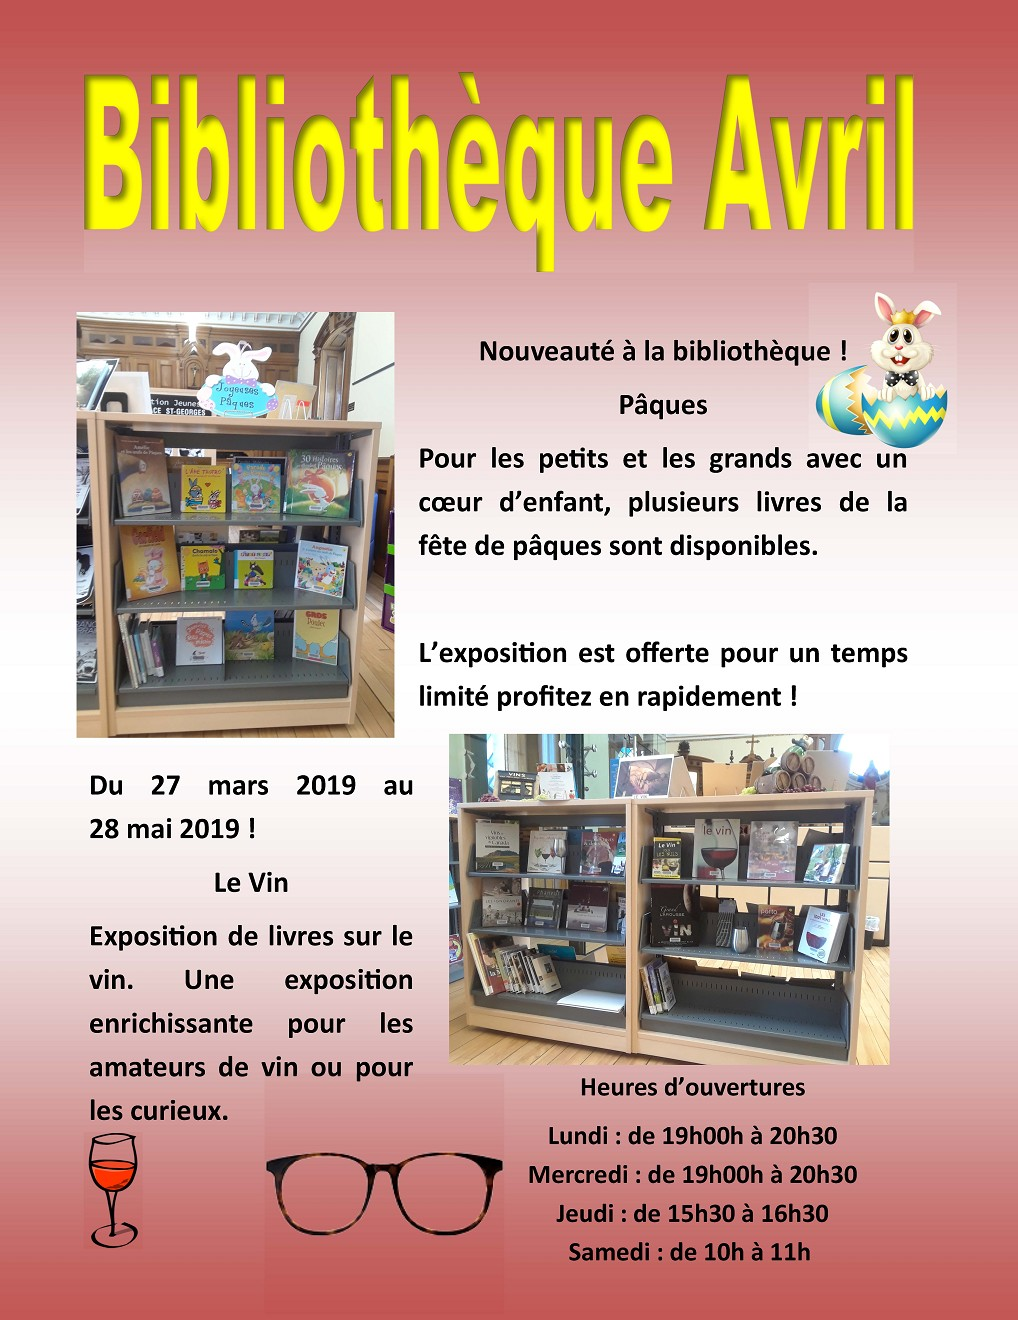 Bibliothèque - Avril 2019 (Photo : © Angélika)